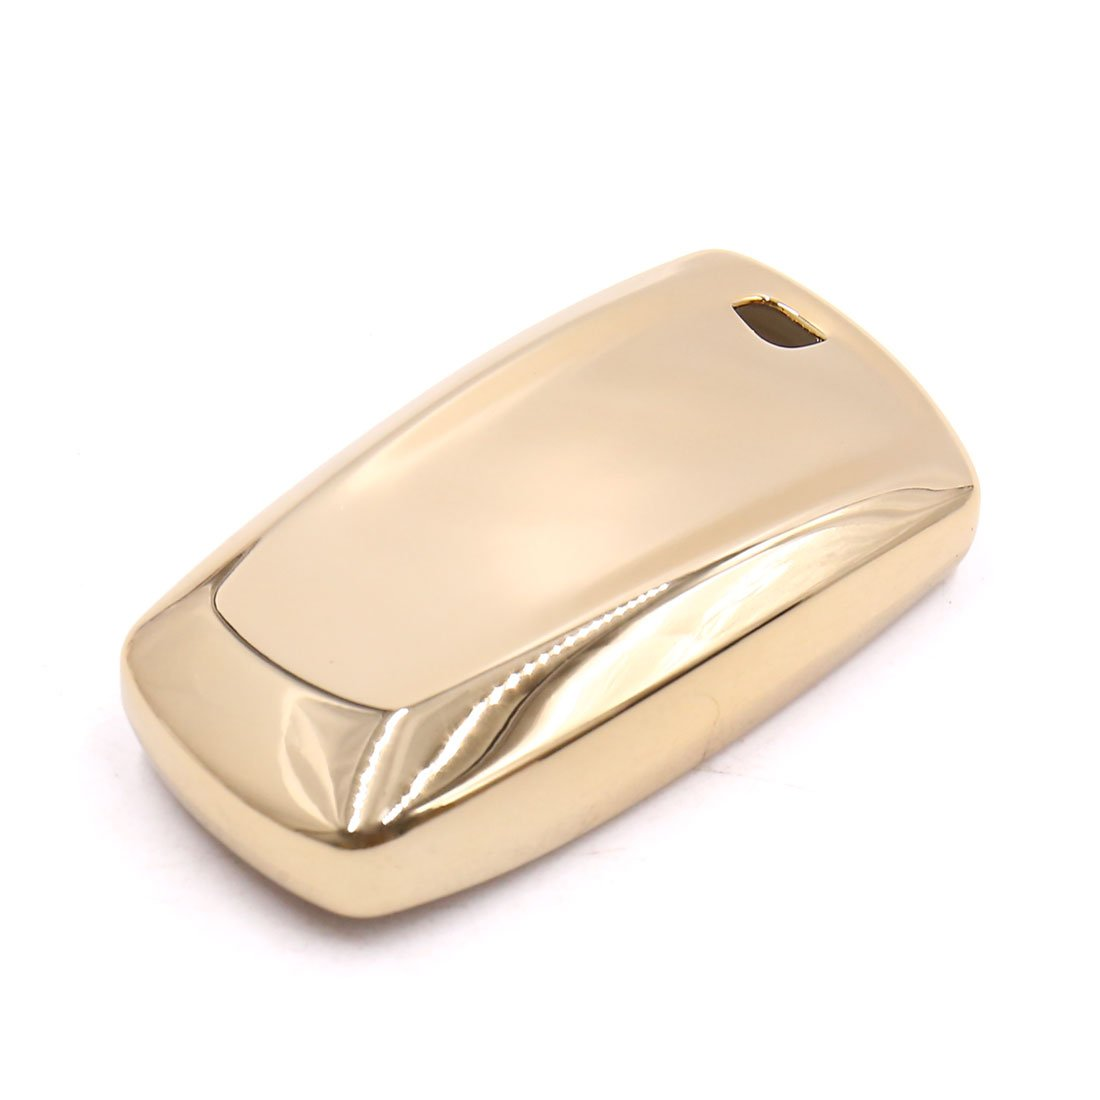 uxcell Gold Tone Remote Key Case Holder Shell Protect Housing Cover For BMW 7 Series